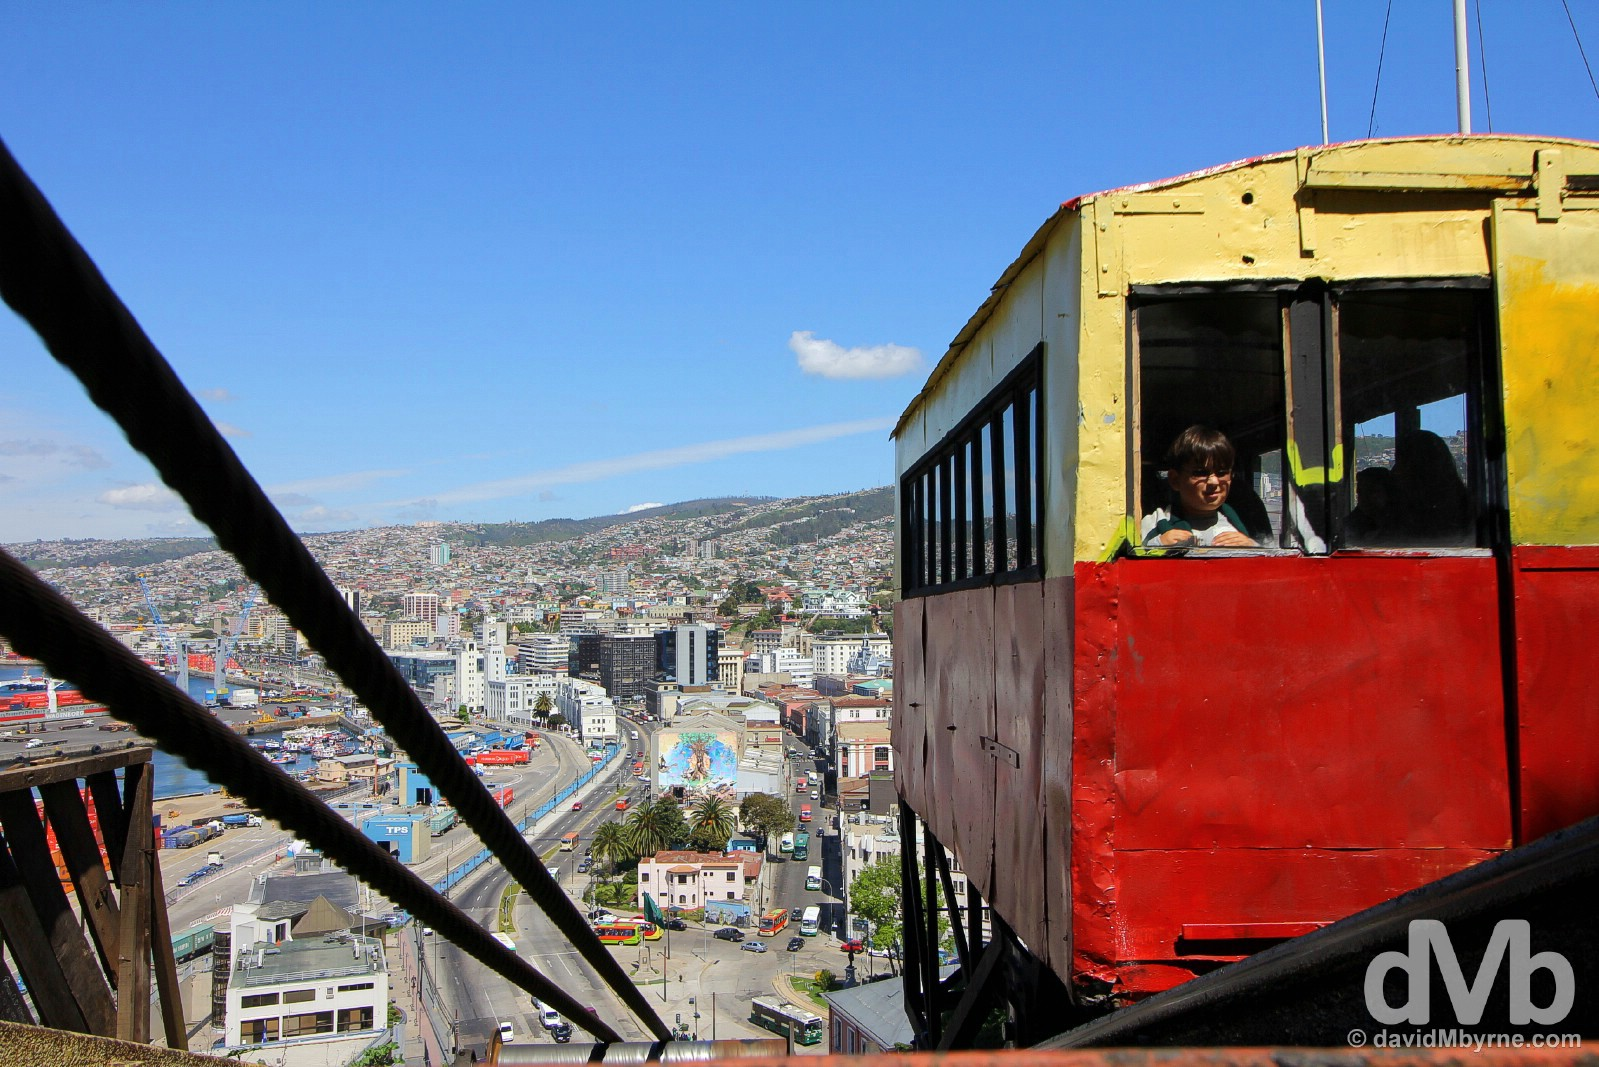 Ascending the Ascensor Artilleria in Valparaiso, Chile. October 8, 2015.